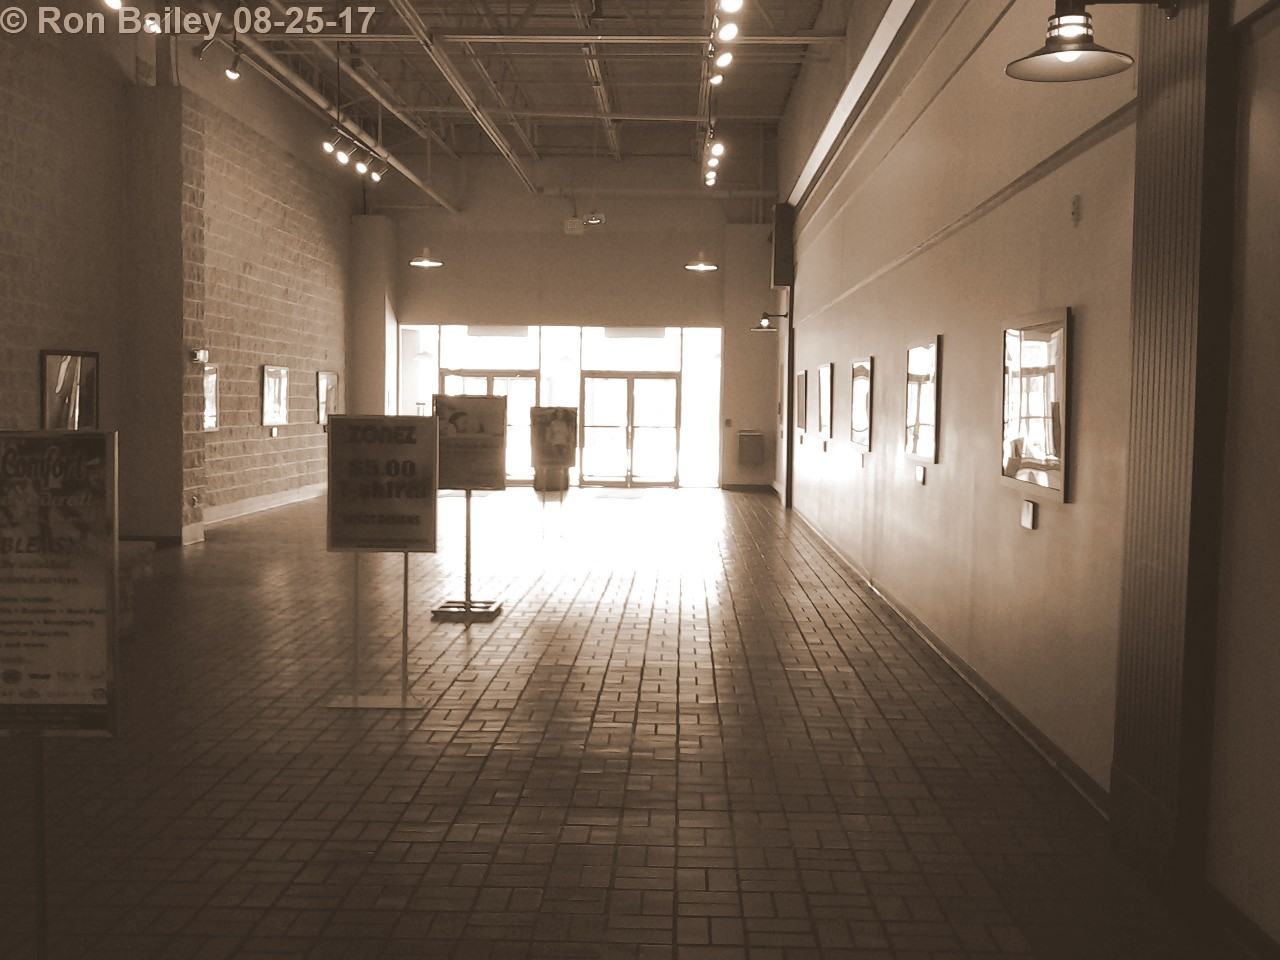 The Market on State in Sepia 8-25-2017 2-52-51 PM